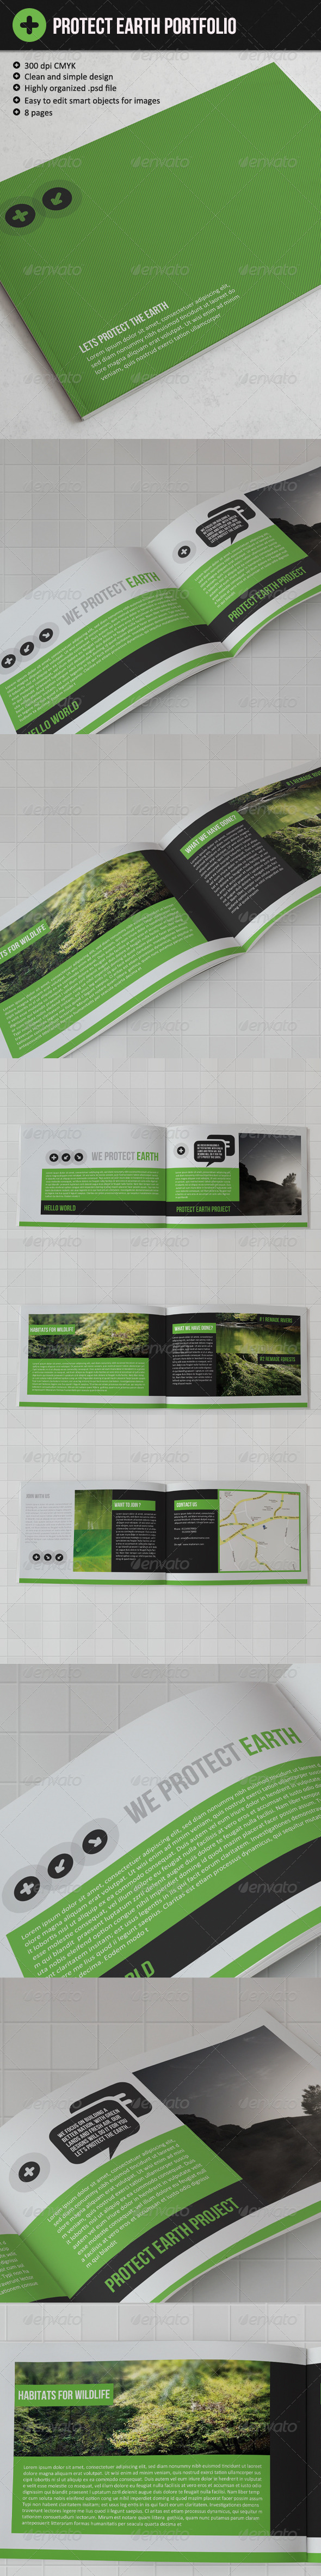 GraphicRiver Protect The Earth Brochure 2944225